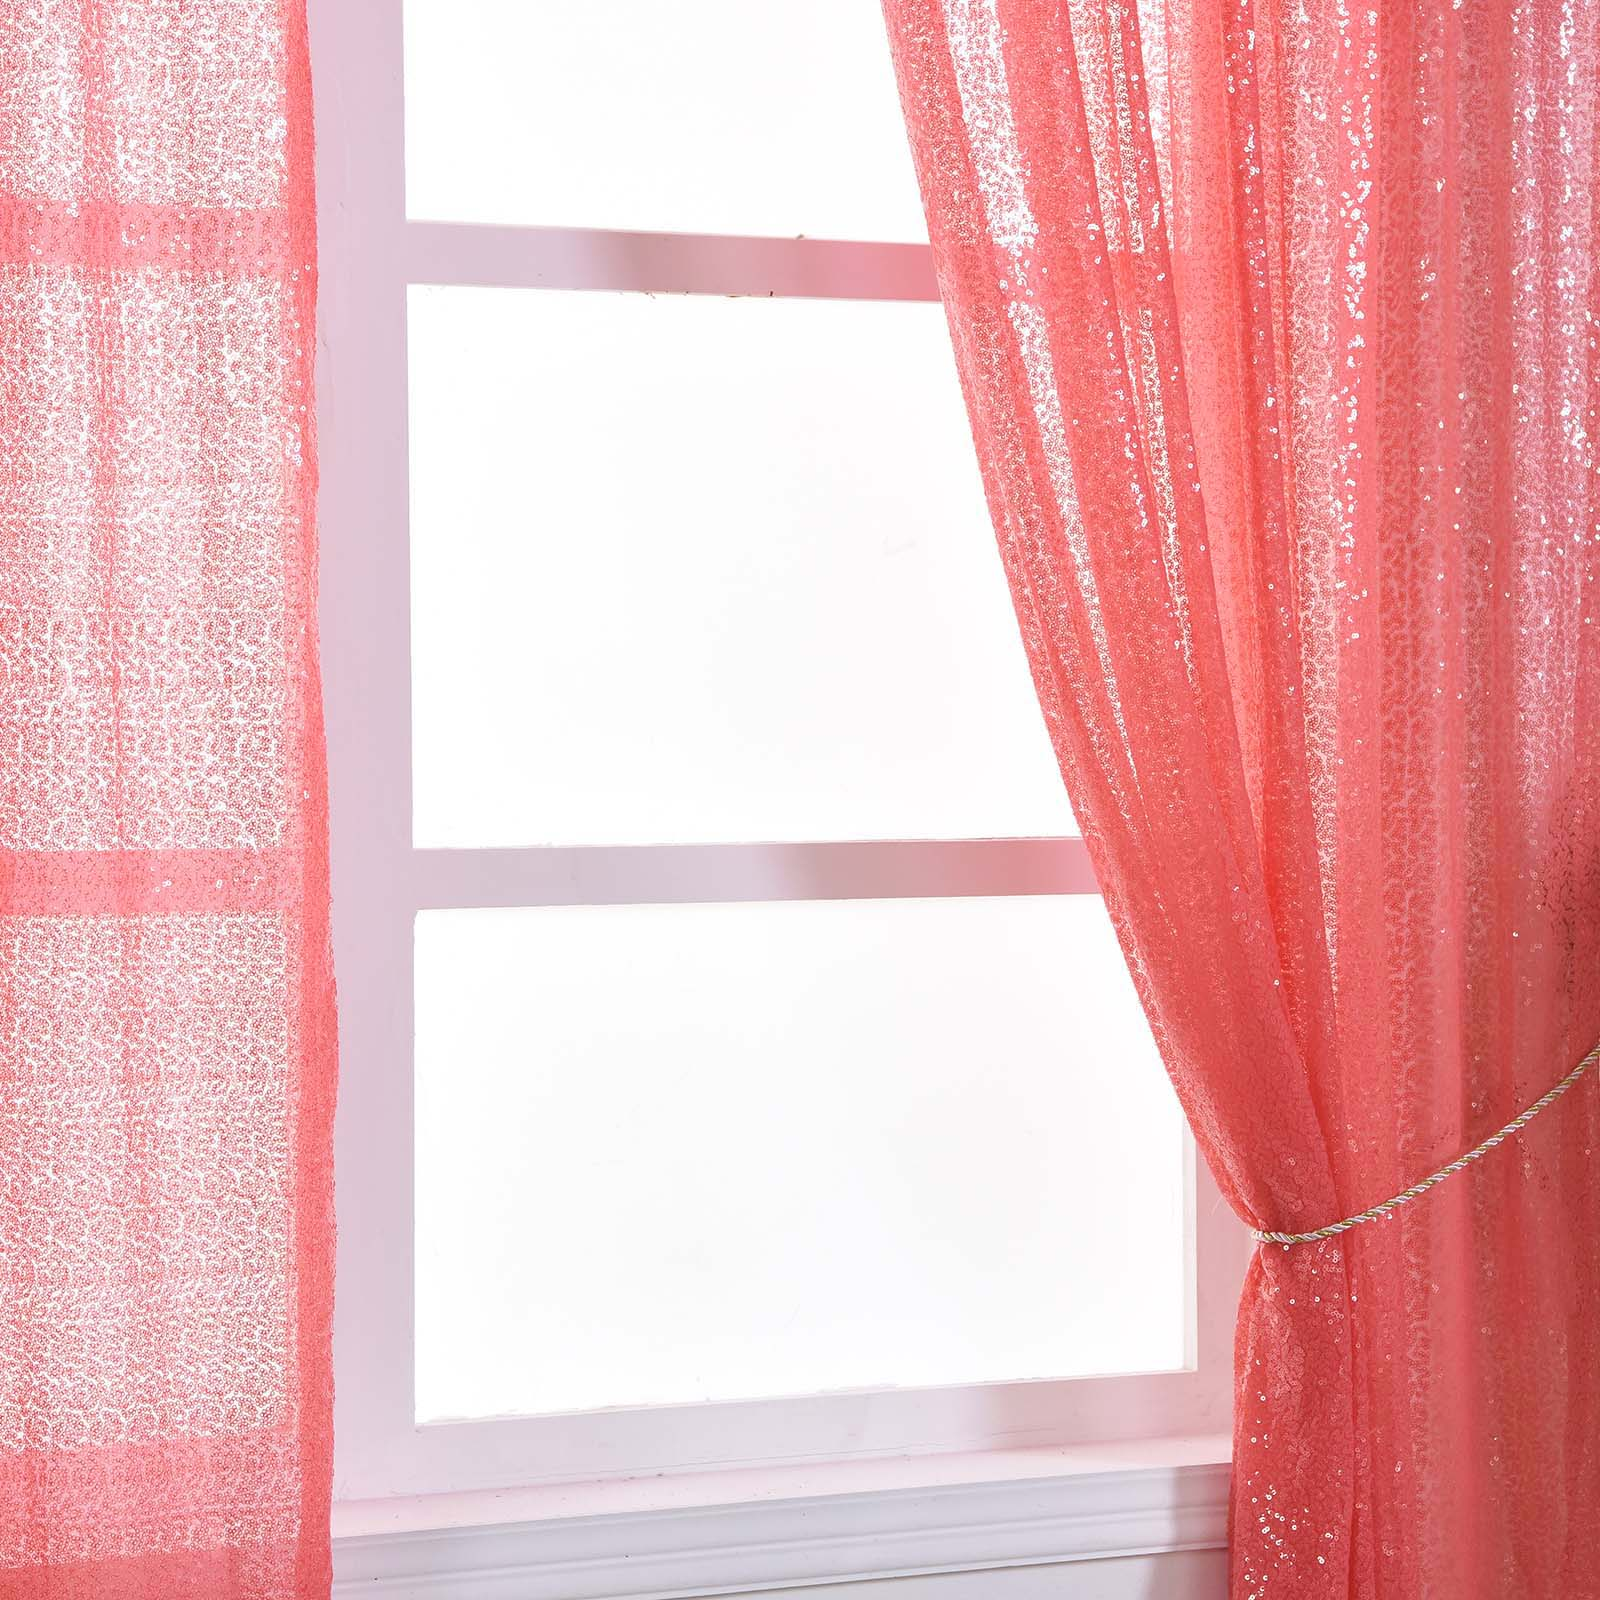 Glitzy Sequin Curtains 52x64 Coral Pack Of 2 Window Treatment Panels With Rod Pockets